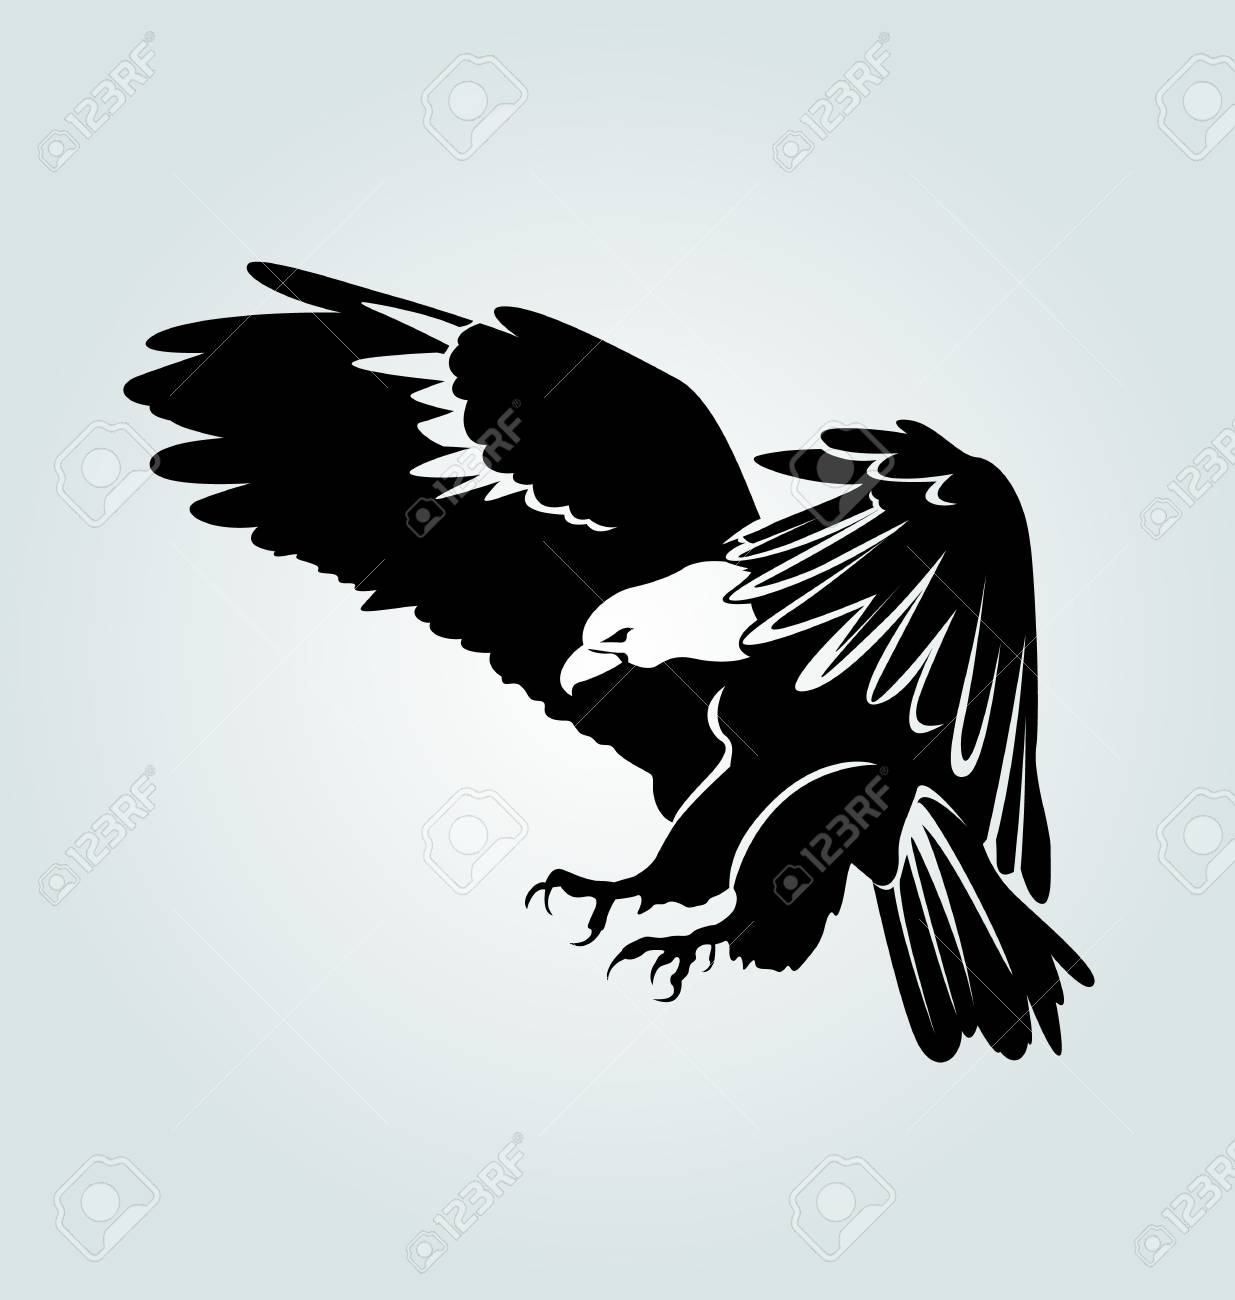 Vector Silhouette Of Flying Eagle Royalty Free Cliparts Vectors And Stock Illustration Image 93191703 1,000+ vectors, stock photos & psd files. vector silhouette of flying eagle